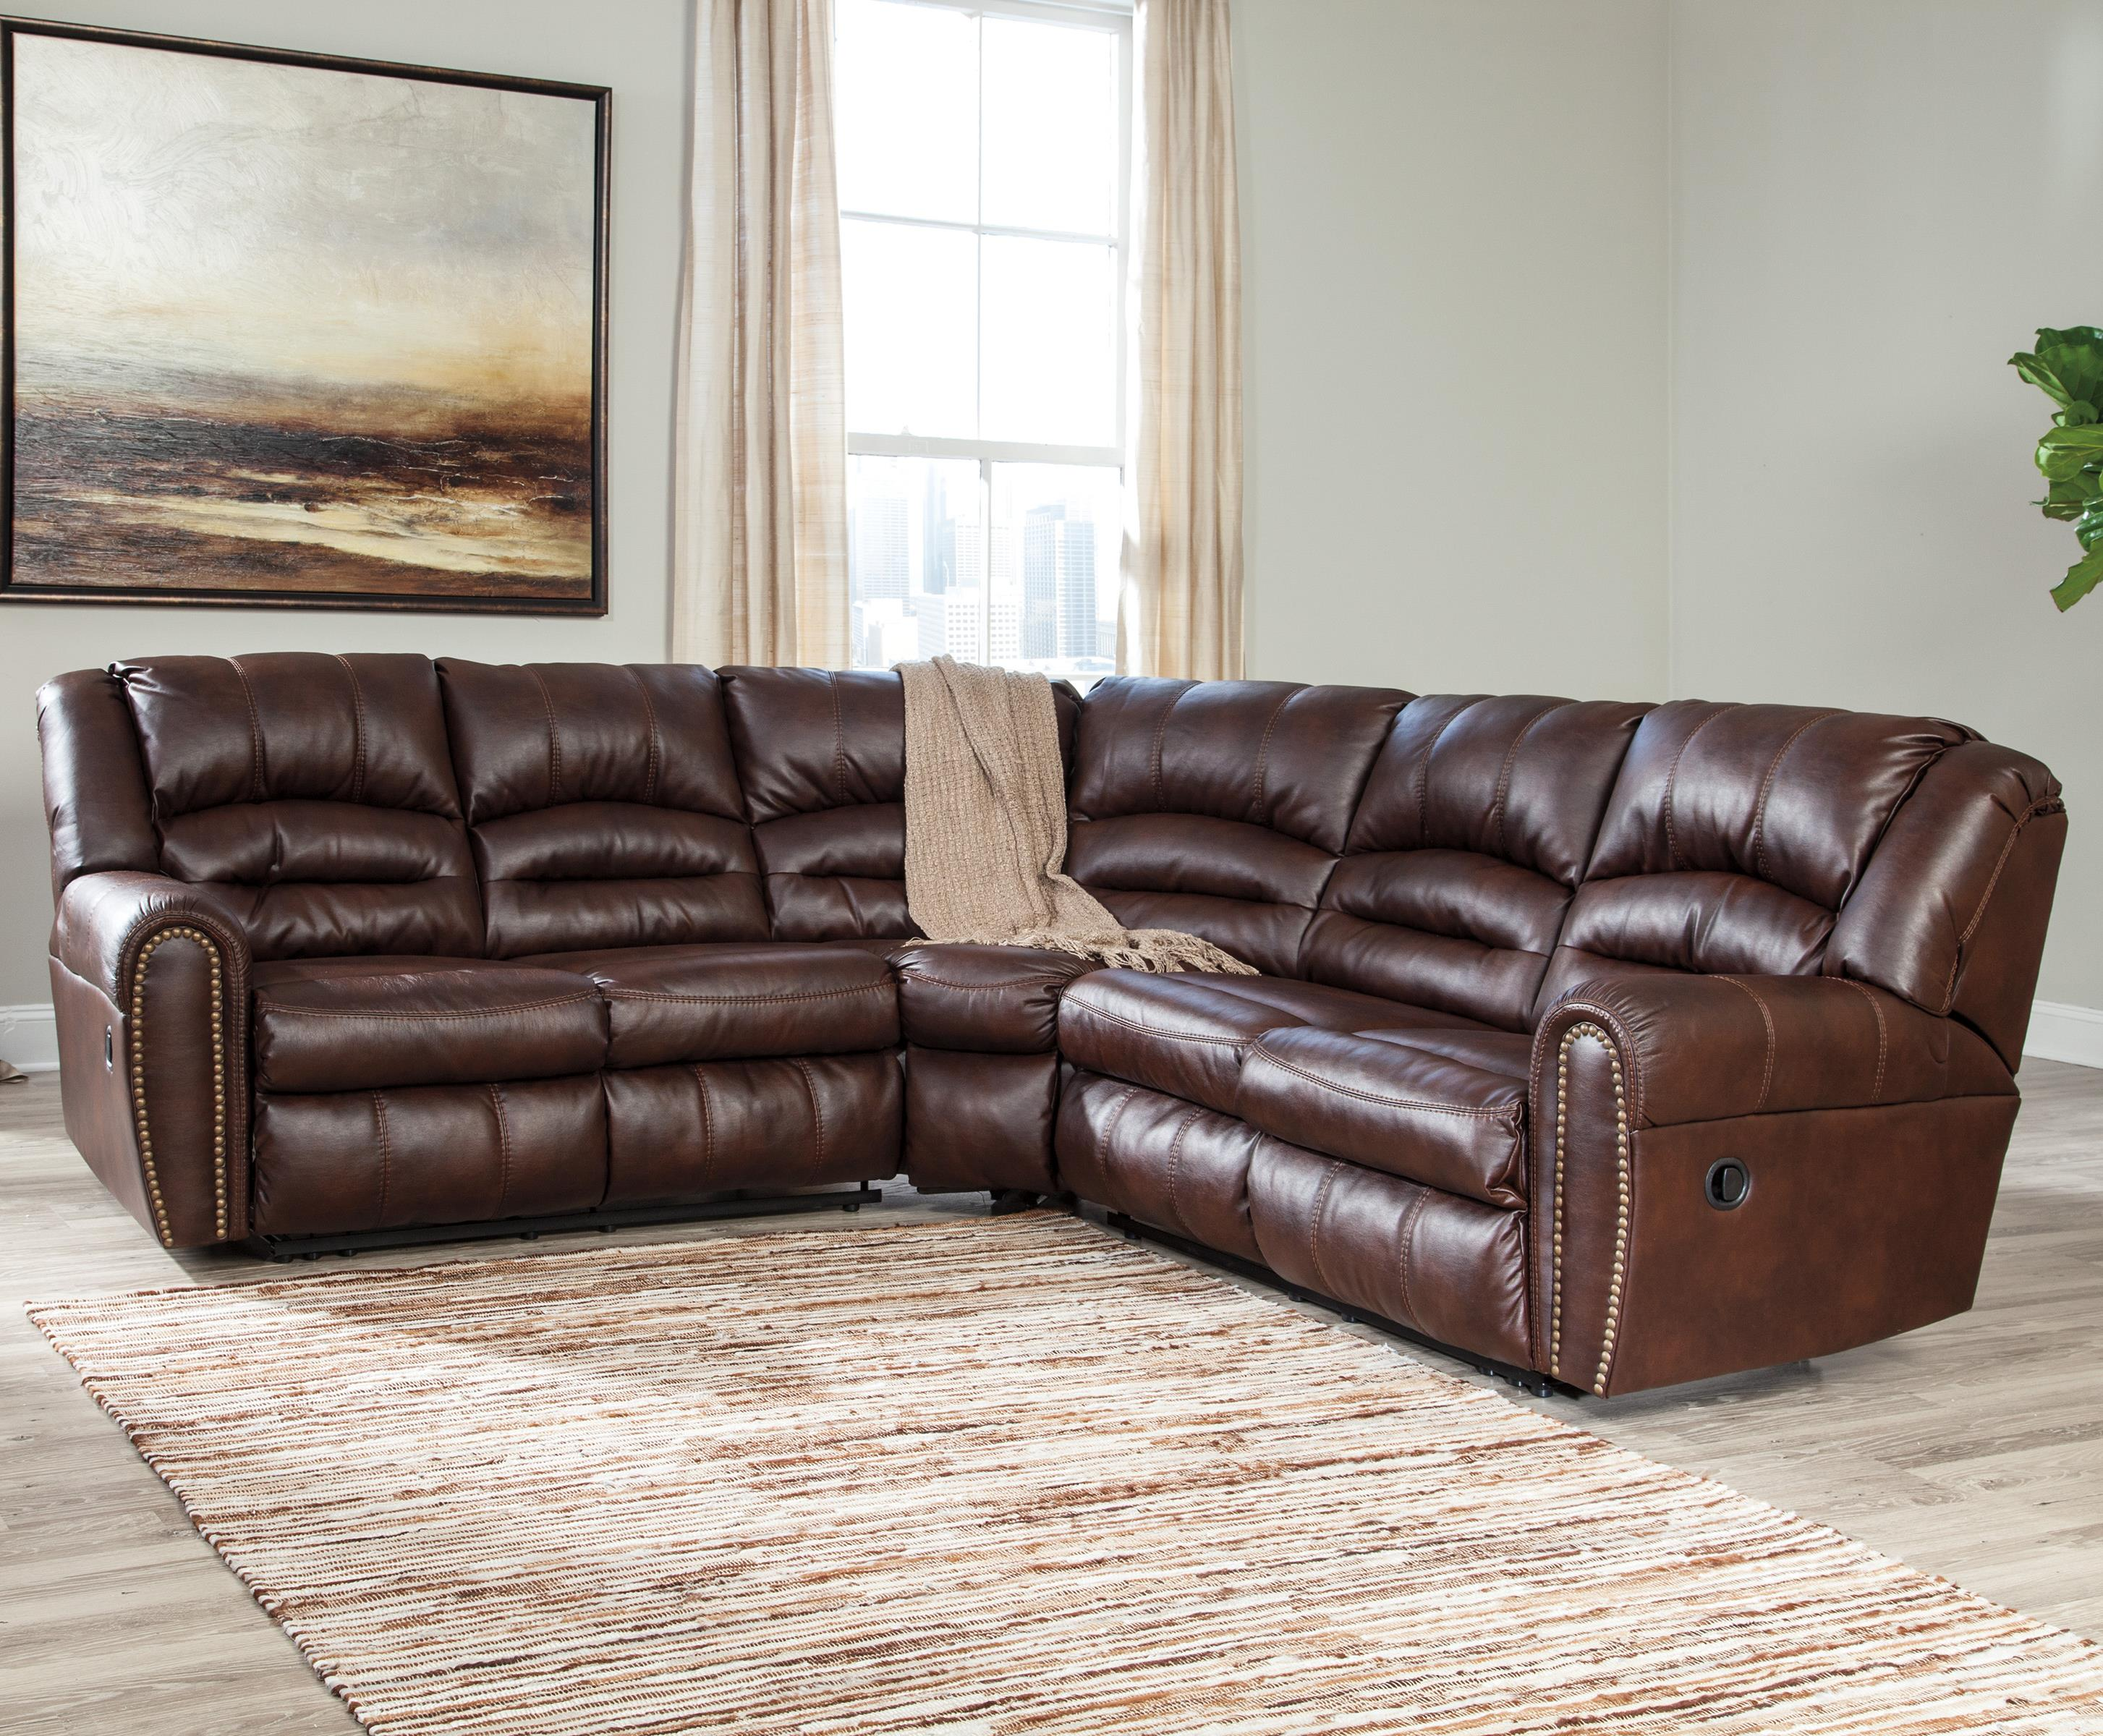 Reclining Sectional with Nailhead Trim & Reclining Sectional with Nailhead Trim by Signature Design by ... islam-shia.org